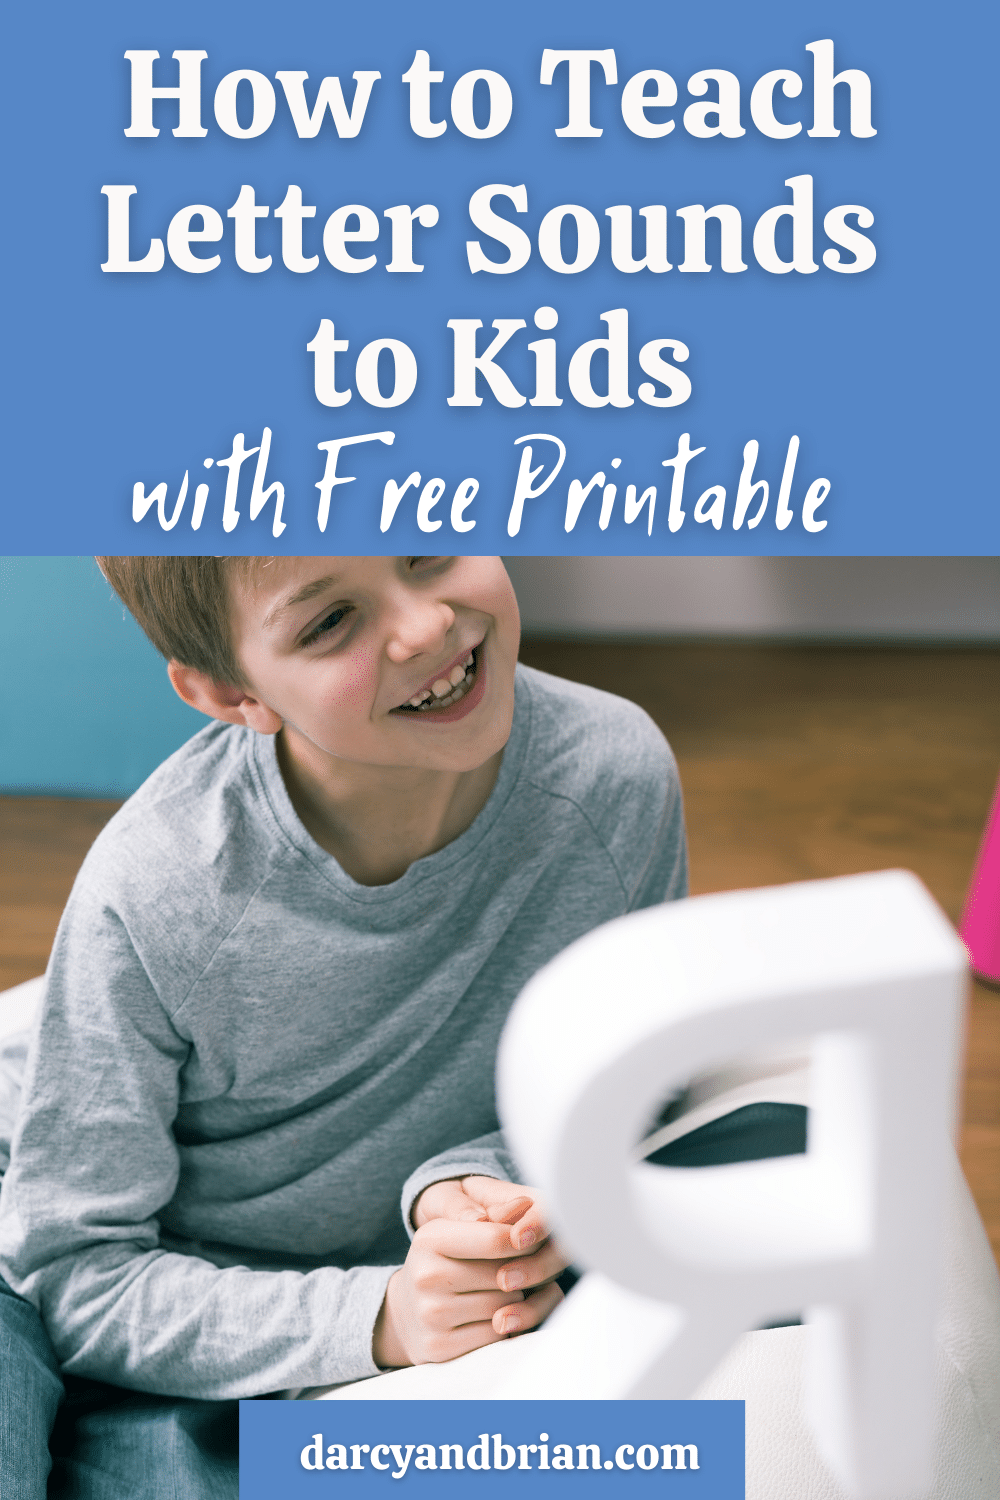 Light blue box with white text at top reads How to Teach Letter Sounds to Kids with Free Printable above photo of white boy in gray long sleeve shirt looking at a large white letter R and smiling.